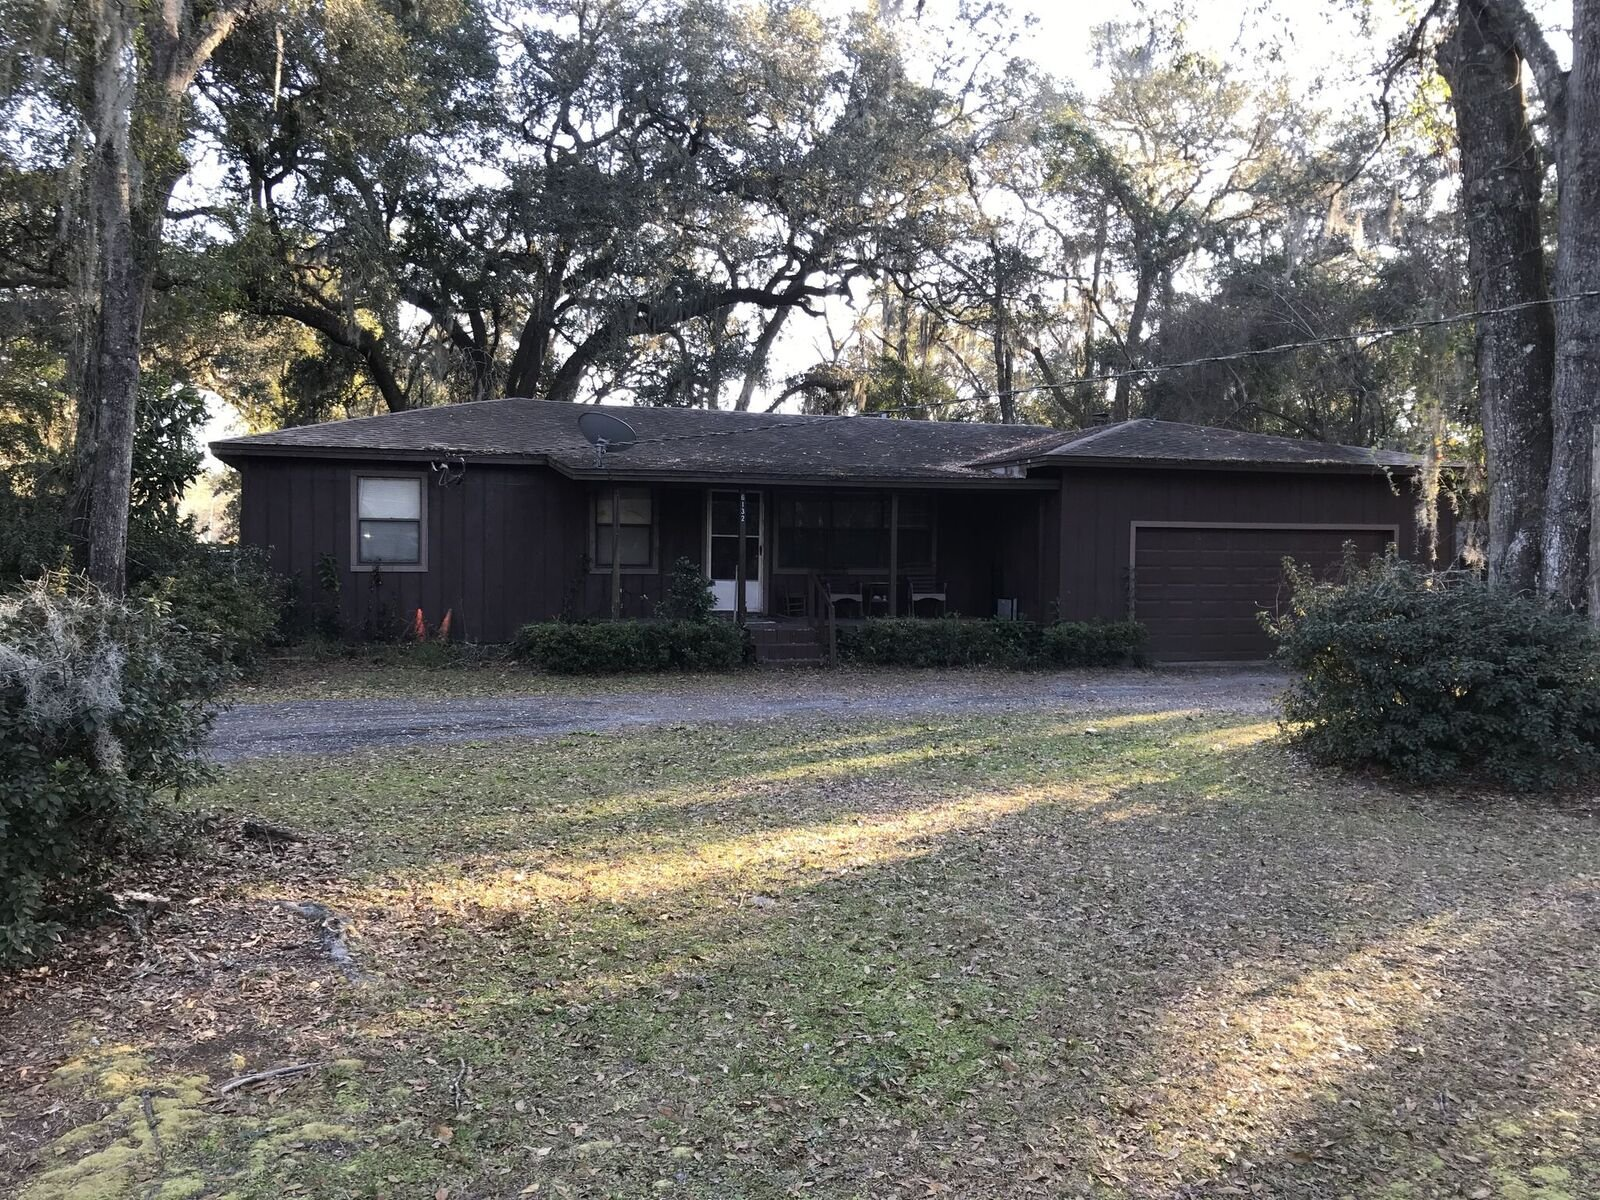 biltmore great flip potential on almost an acre with strong comps